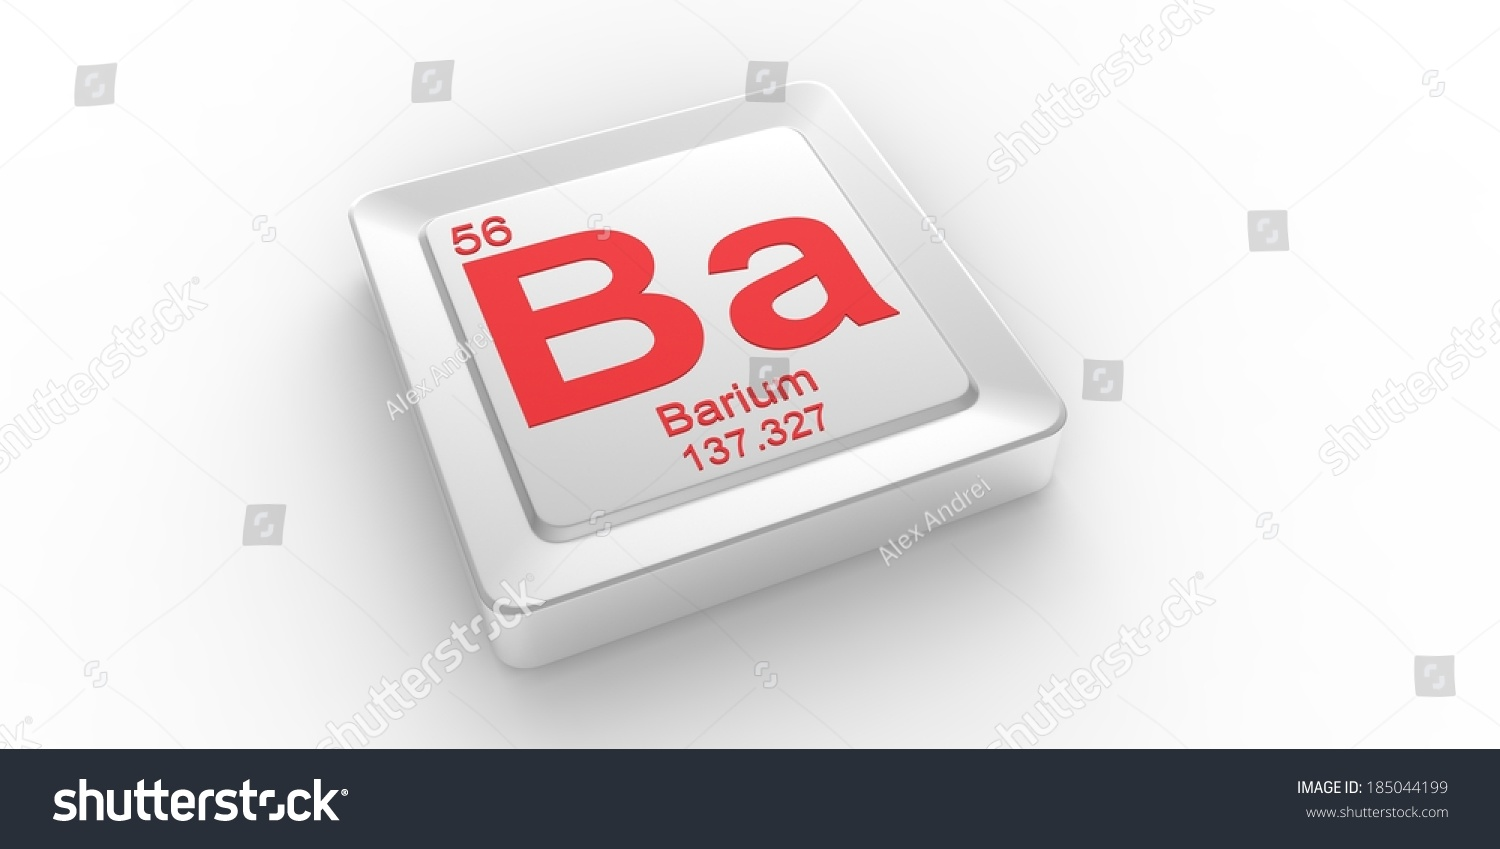 Salt symbol periodic table image collections periodic table images periodic table symbol for salt image collections periodic table element 56 on the periodic table chemical gamestrikefo Gallery